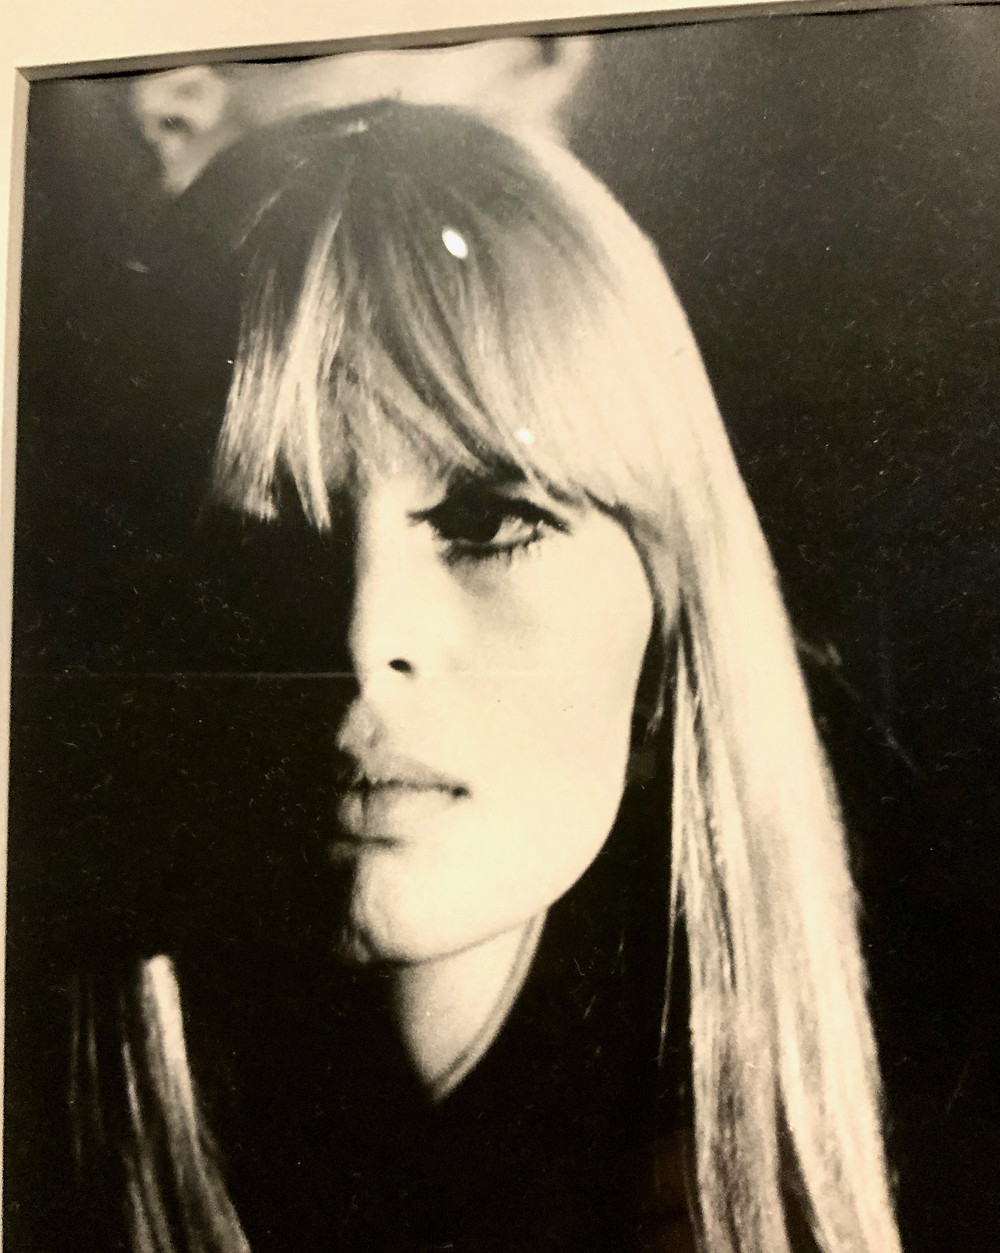 photo of Nico from the Chelsea Girls film at the Warhol Museum